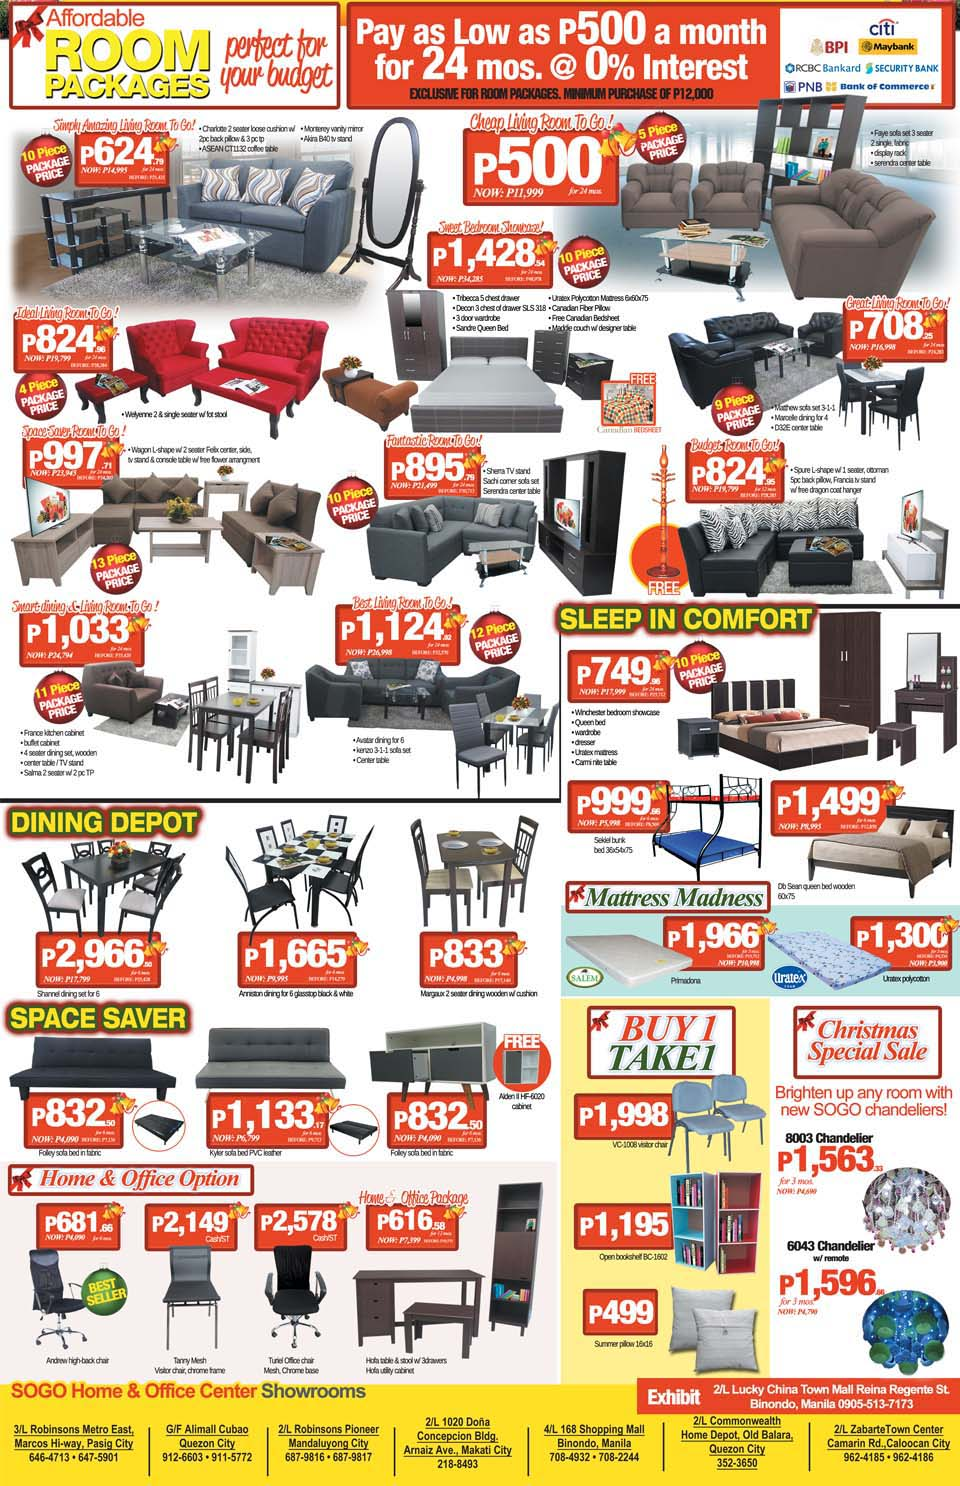 Sogo home office center perfect holiday sale ednything Home furniture sm philippines